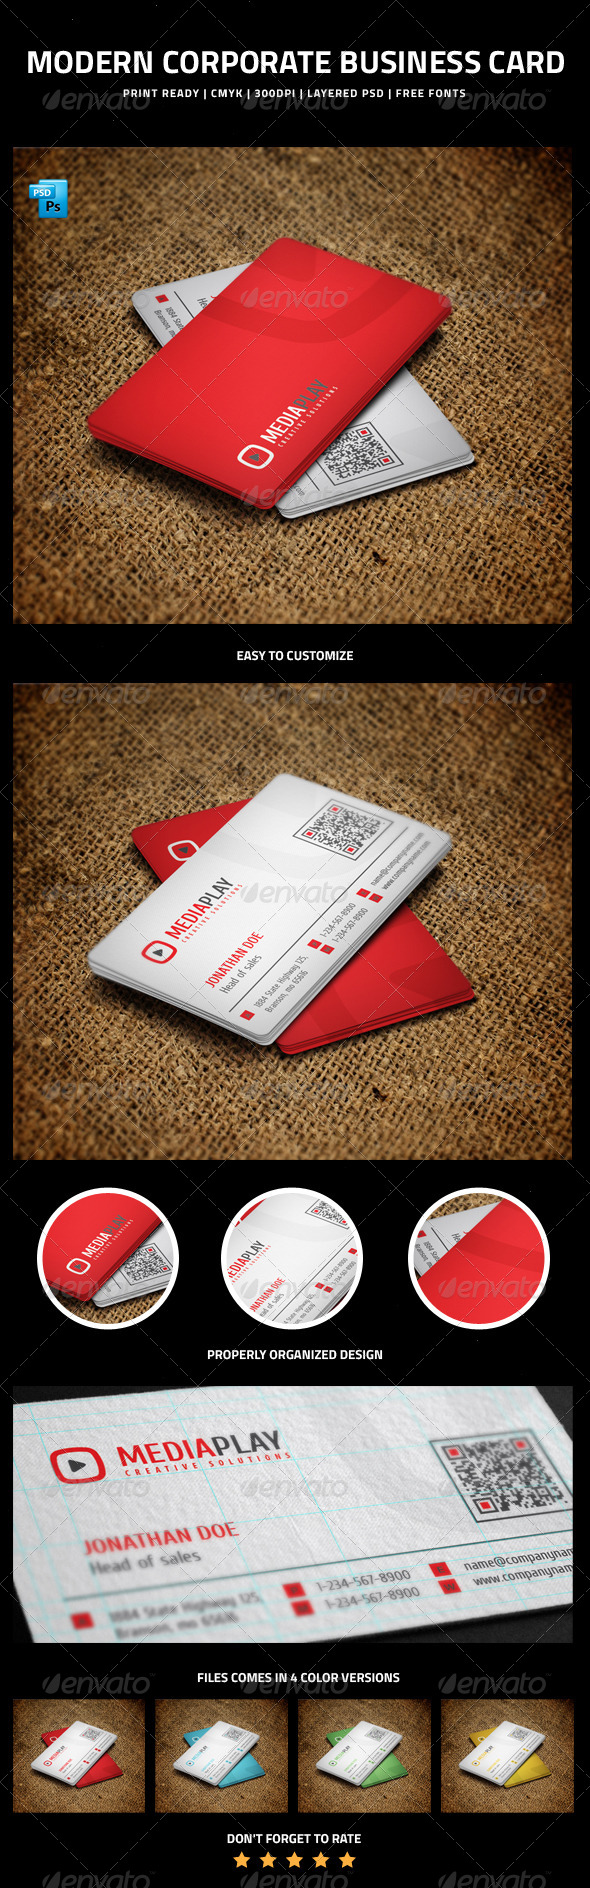 Modern Corporate Business Card  with QR code - 10 - Corporate Business Cards